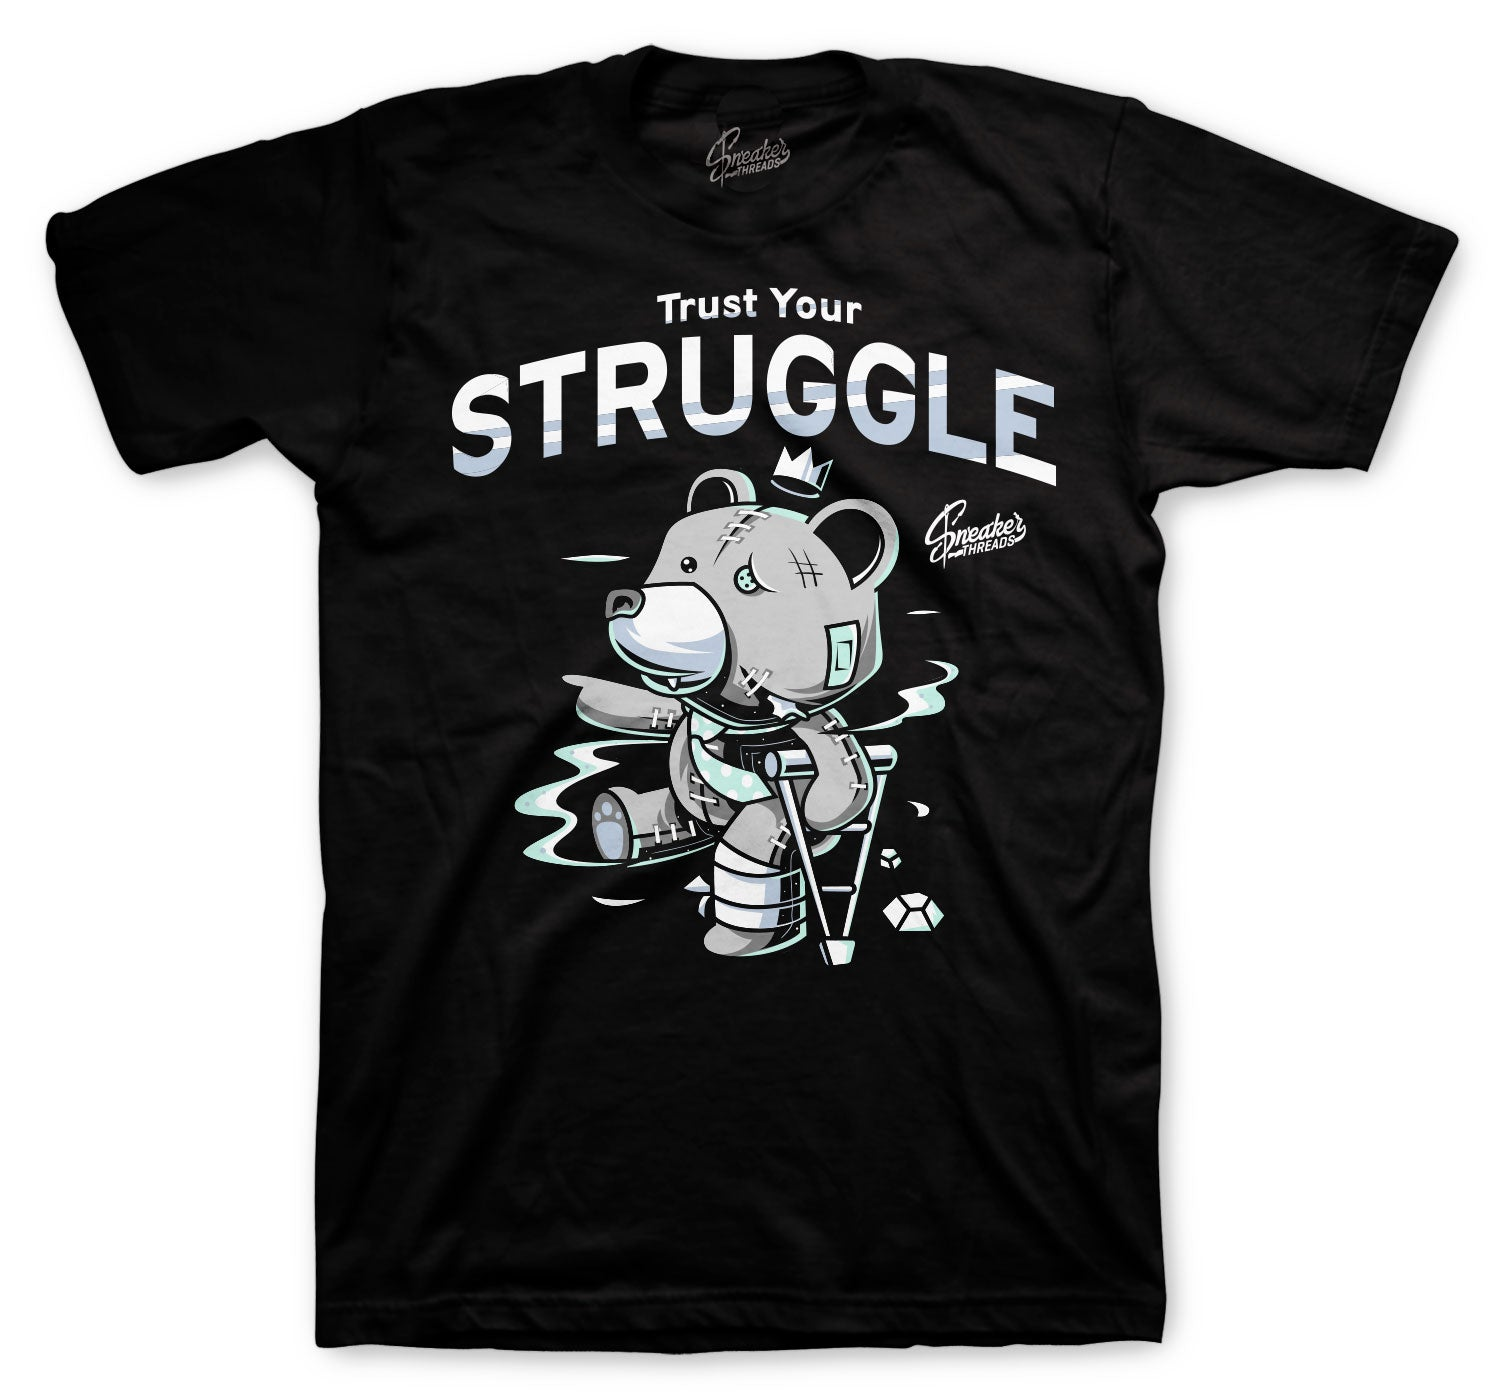 Jordan 12 Easter Shirt - Trust Your Struggle - Black